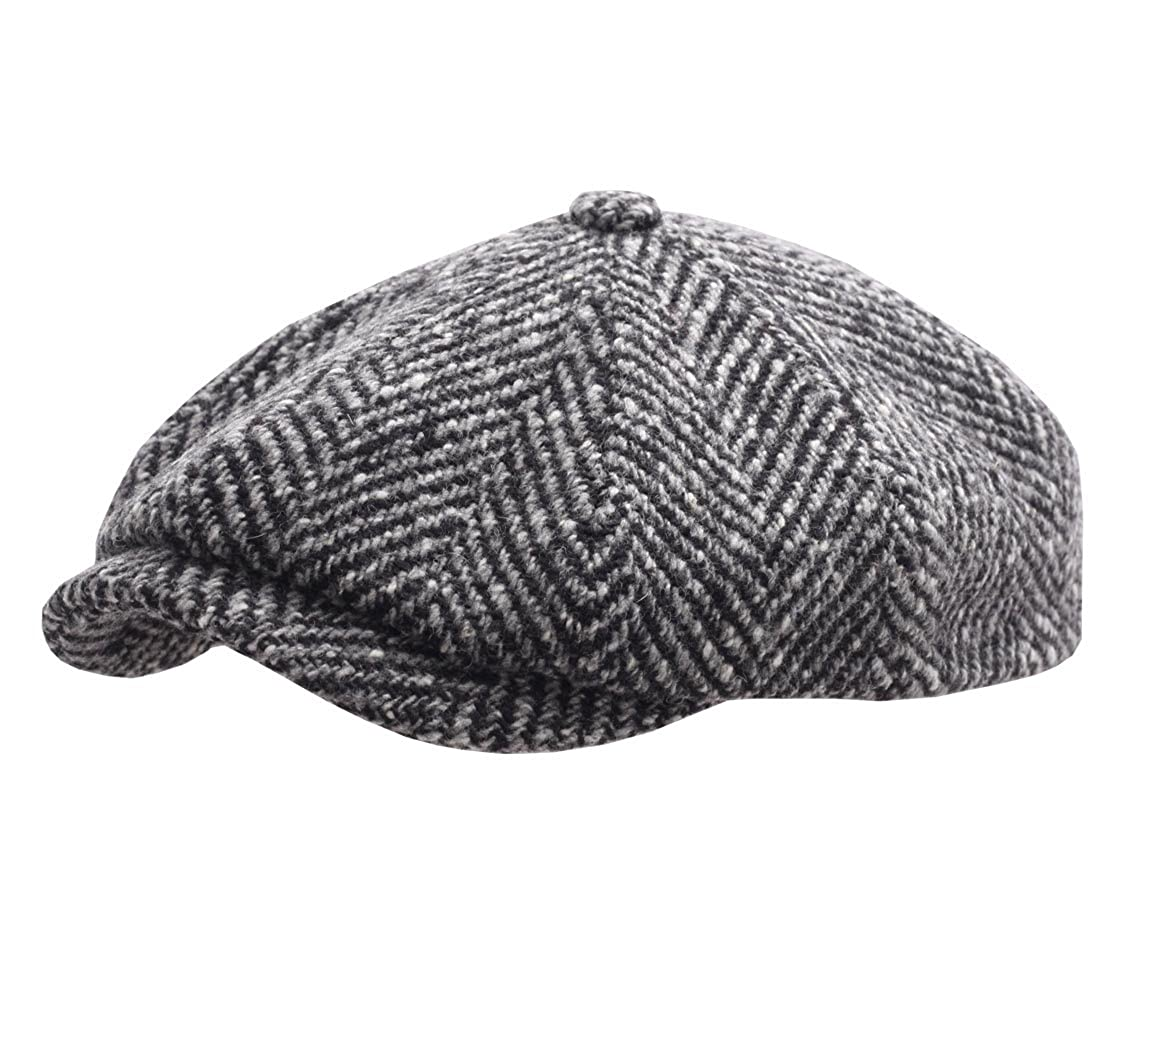 Stetson Men s Hatteras Herringbone Newsboy Cap at Amazon Men s Clothing  store  6da6d1da4a4